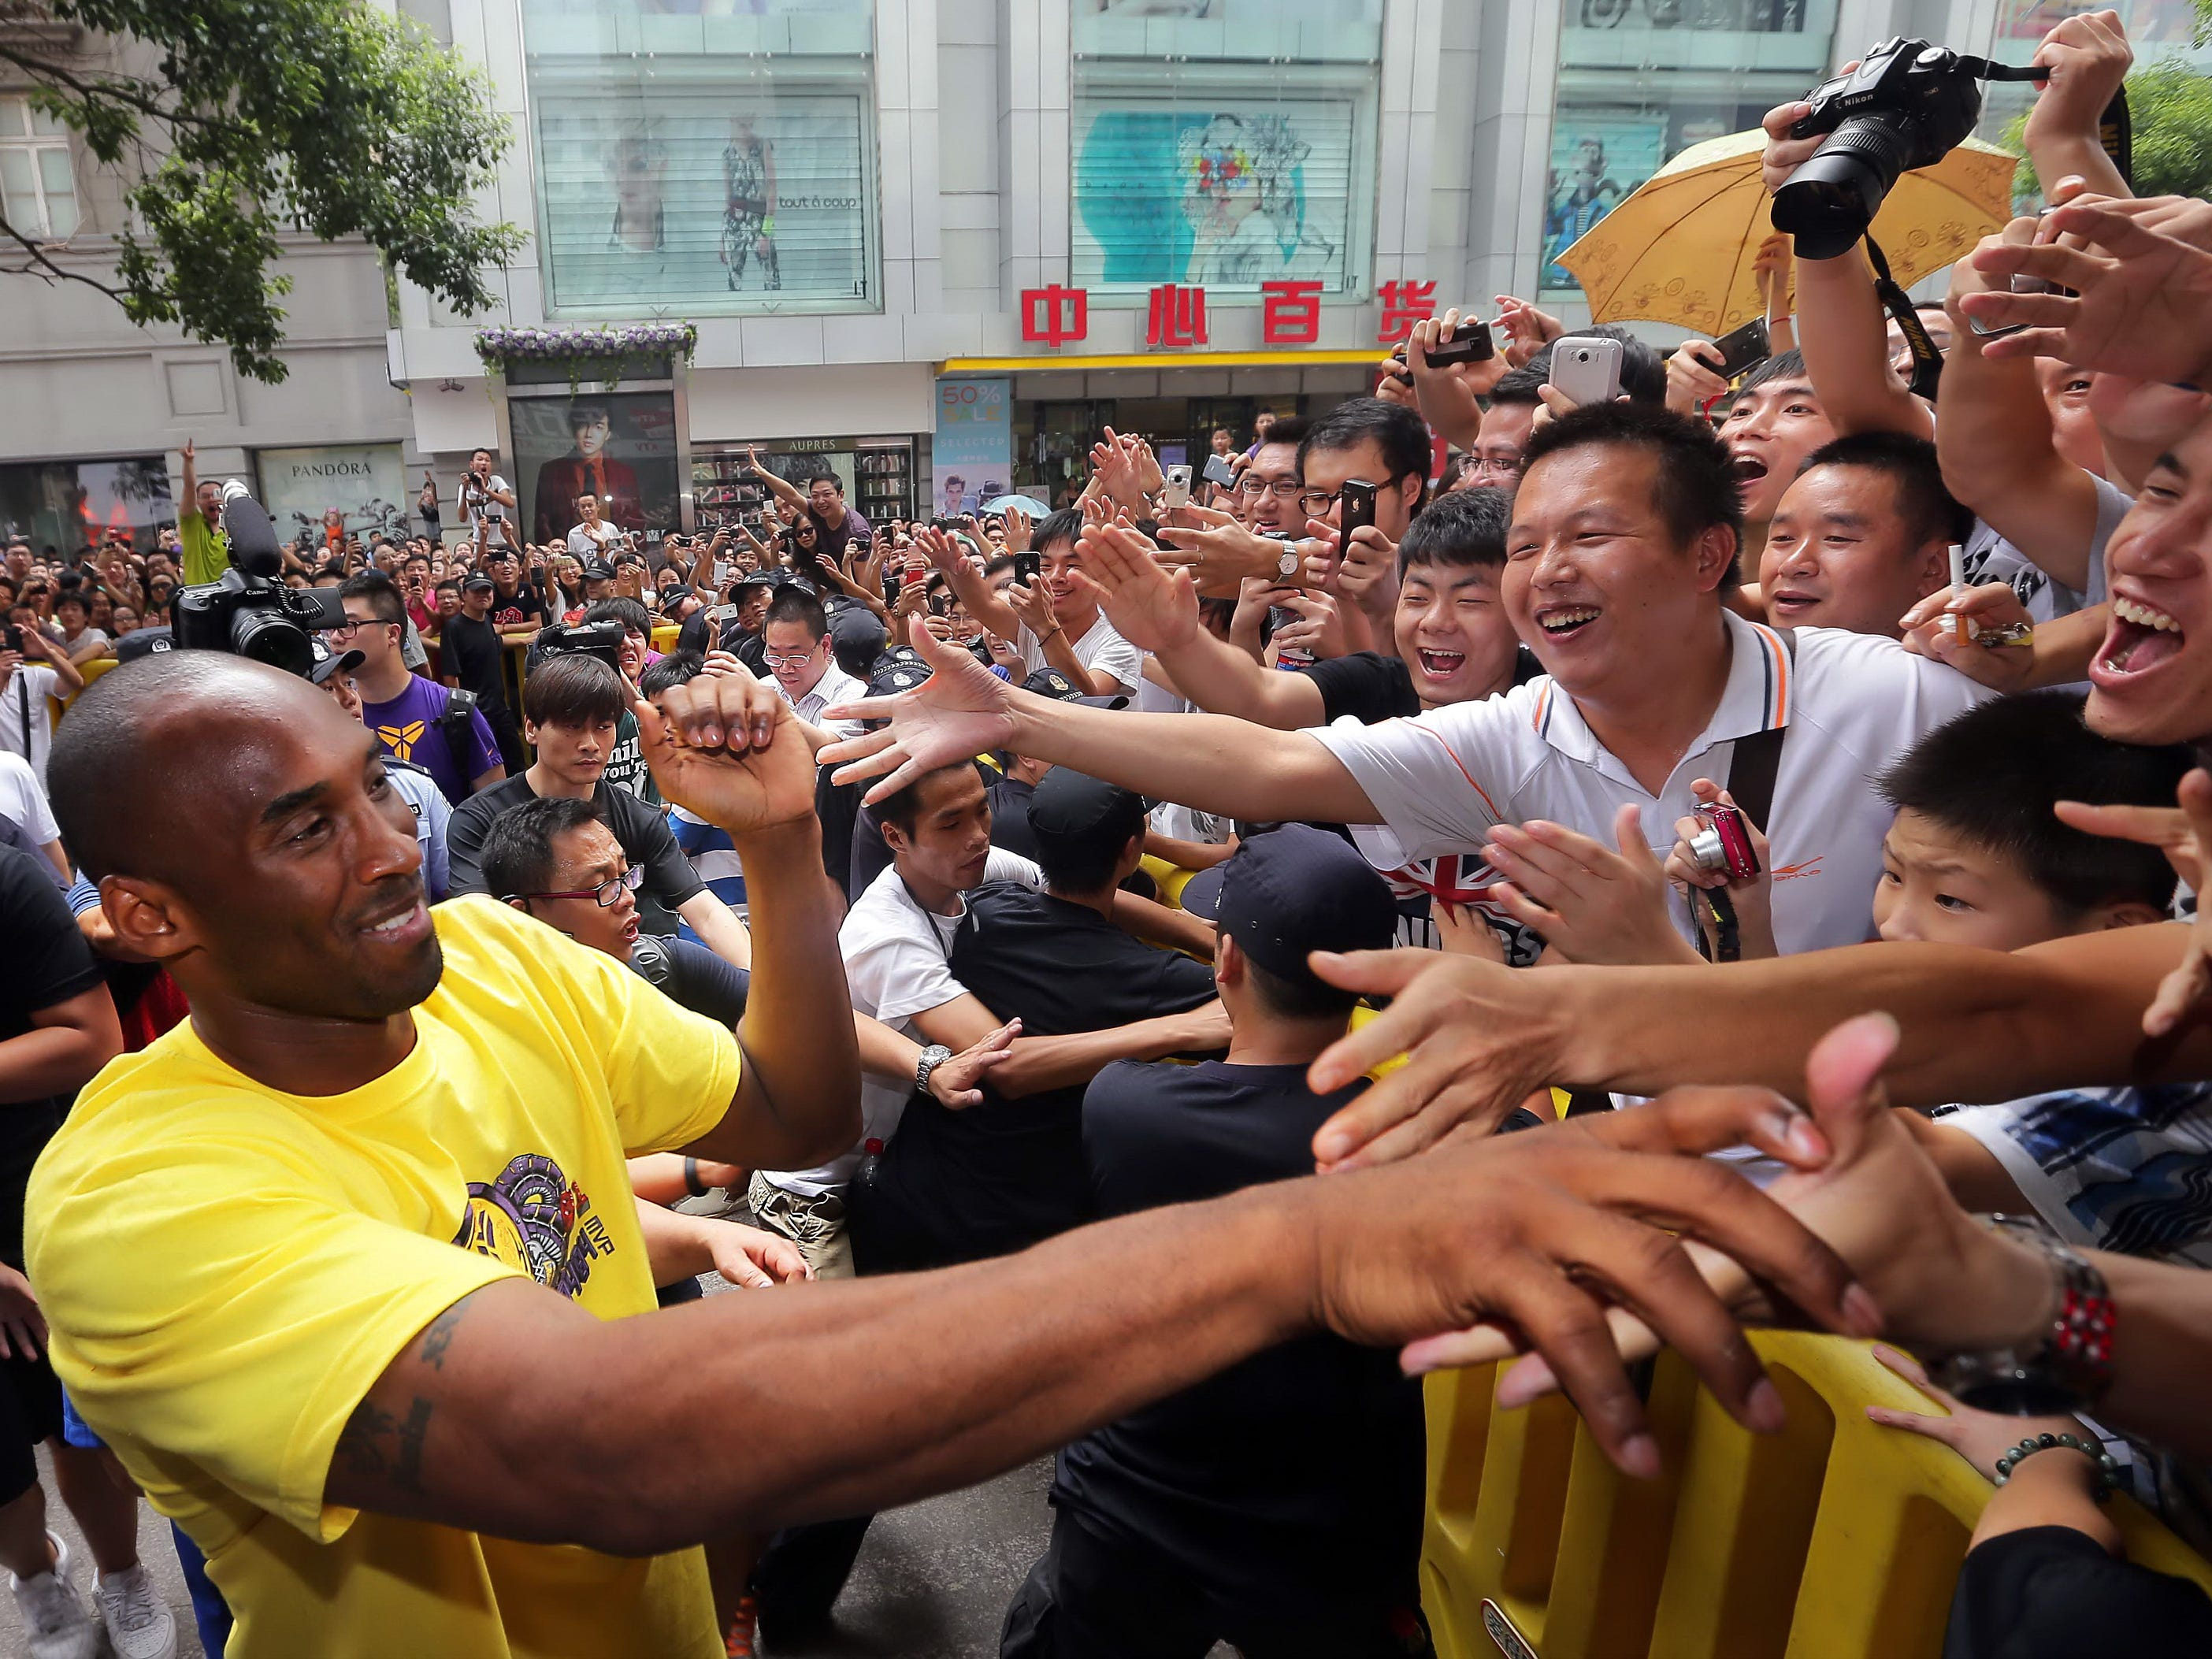 Kobe is a big deal in China, and he's made many trips to the country. He even started the Kobe Bryant China Fund, which raises money within China earmarked for education and health programs.